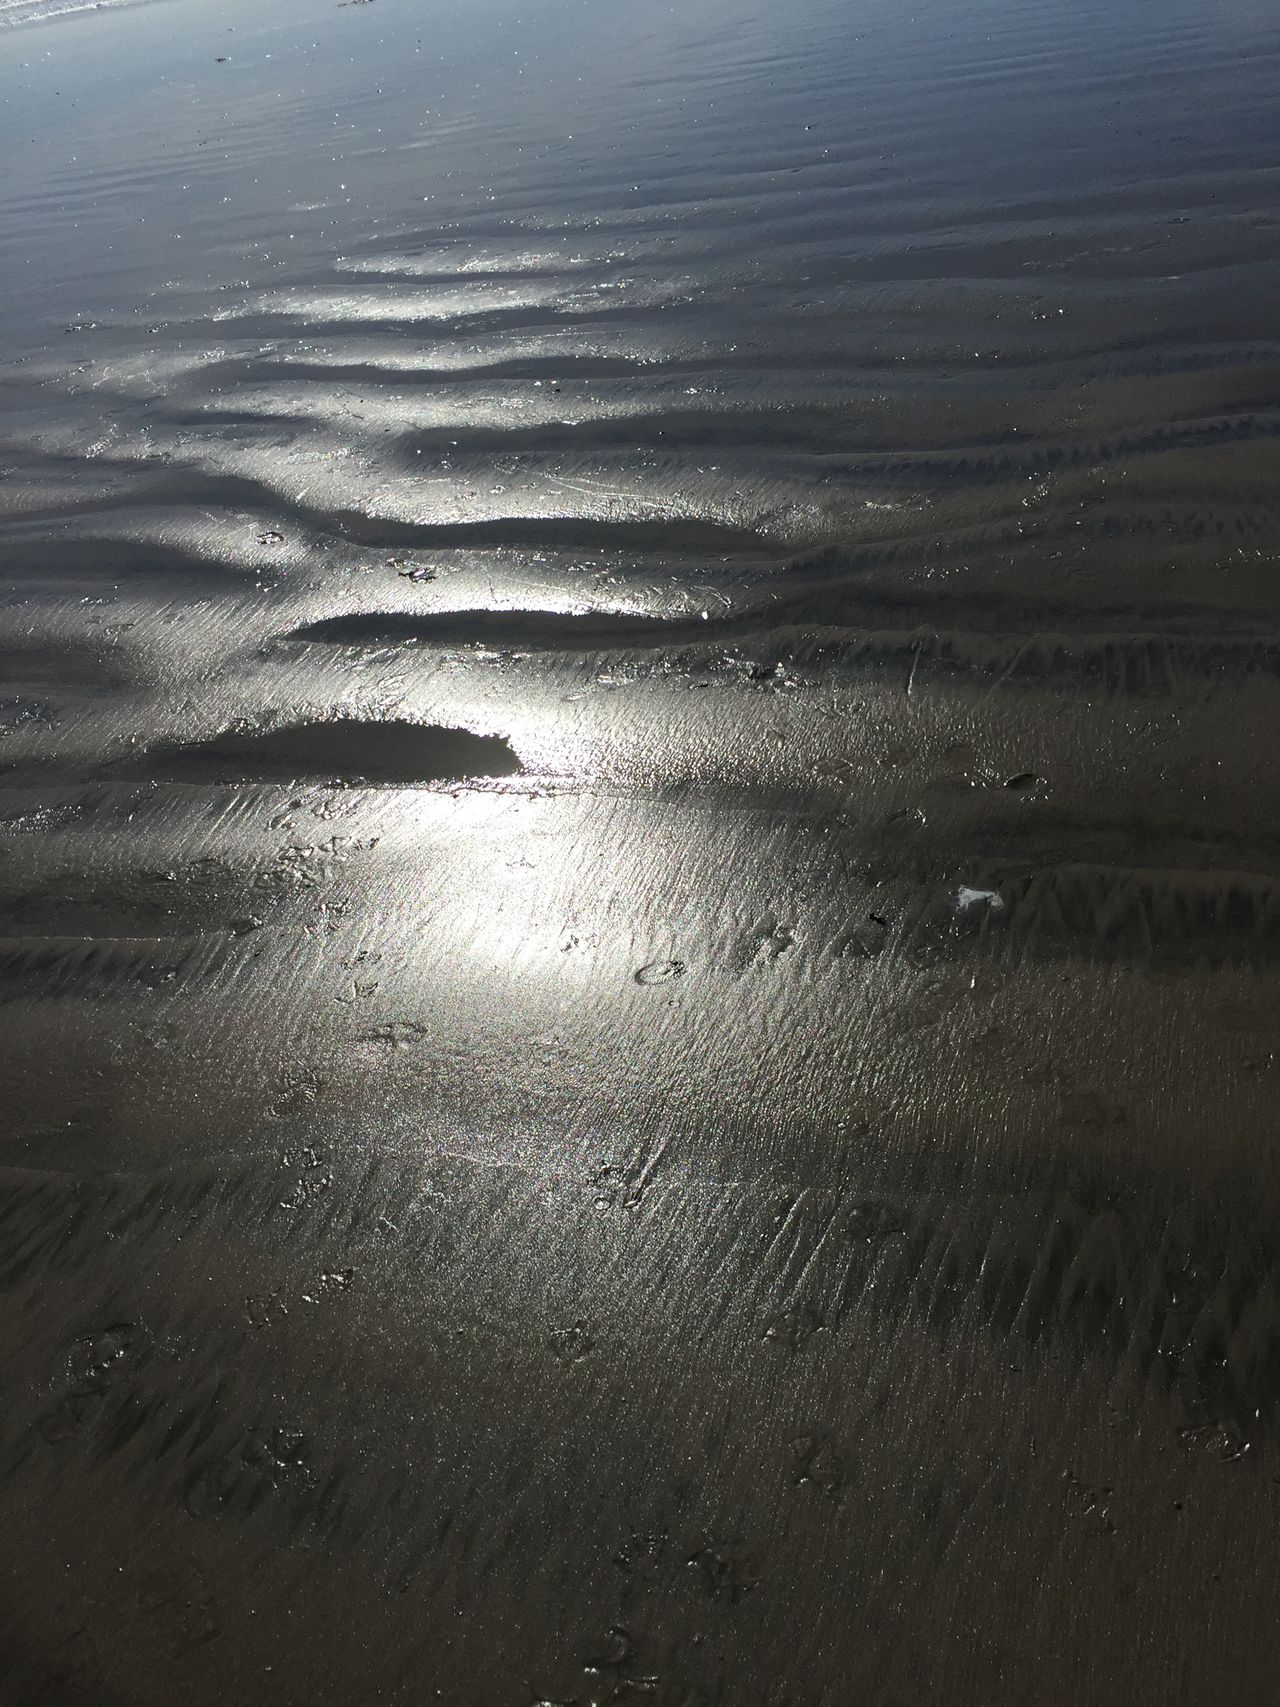 Cold Day At The Beach Day At The Beach Nature Sand Patterns Sea And Sky Sea Shore Seaside Beach Sea Shore Birds